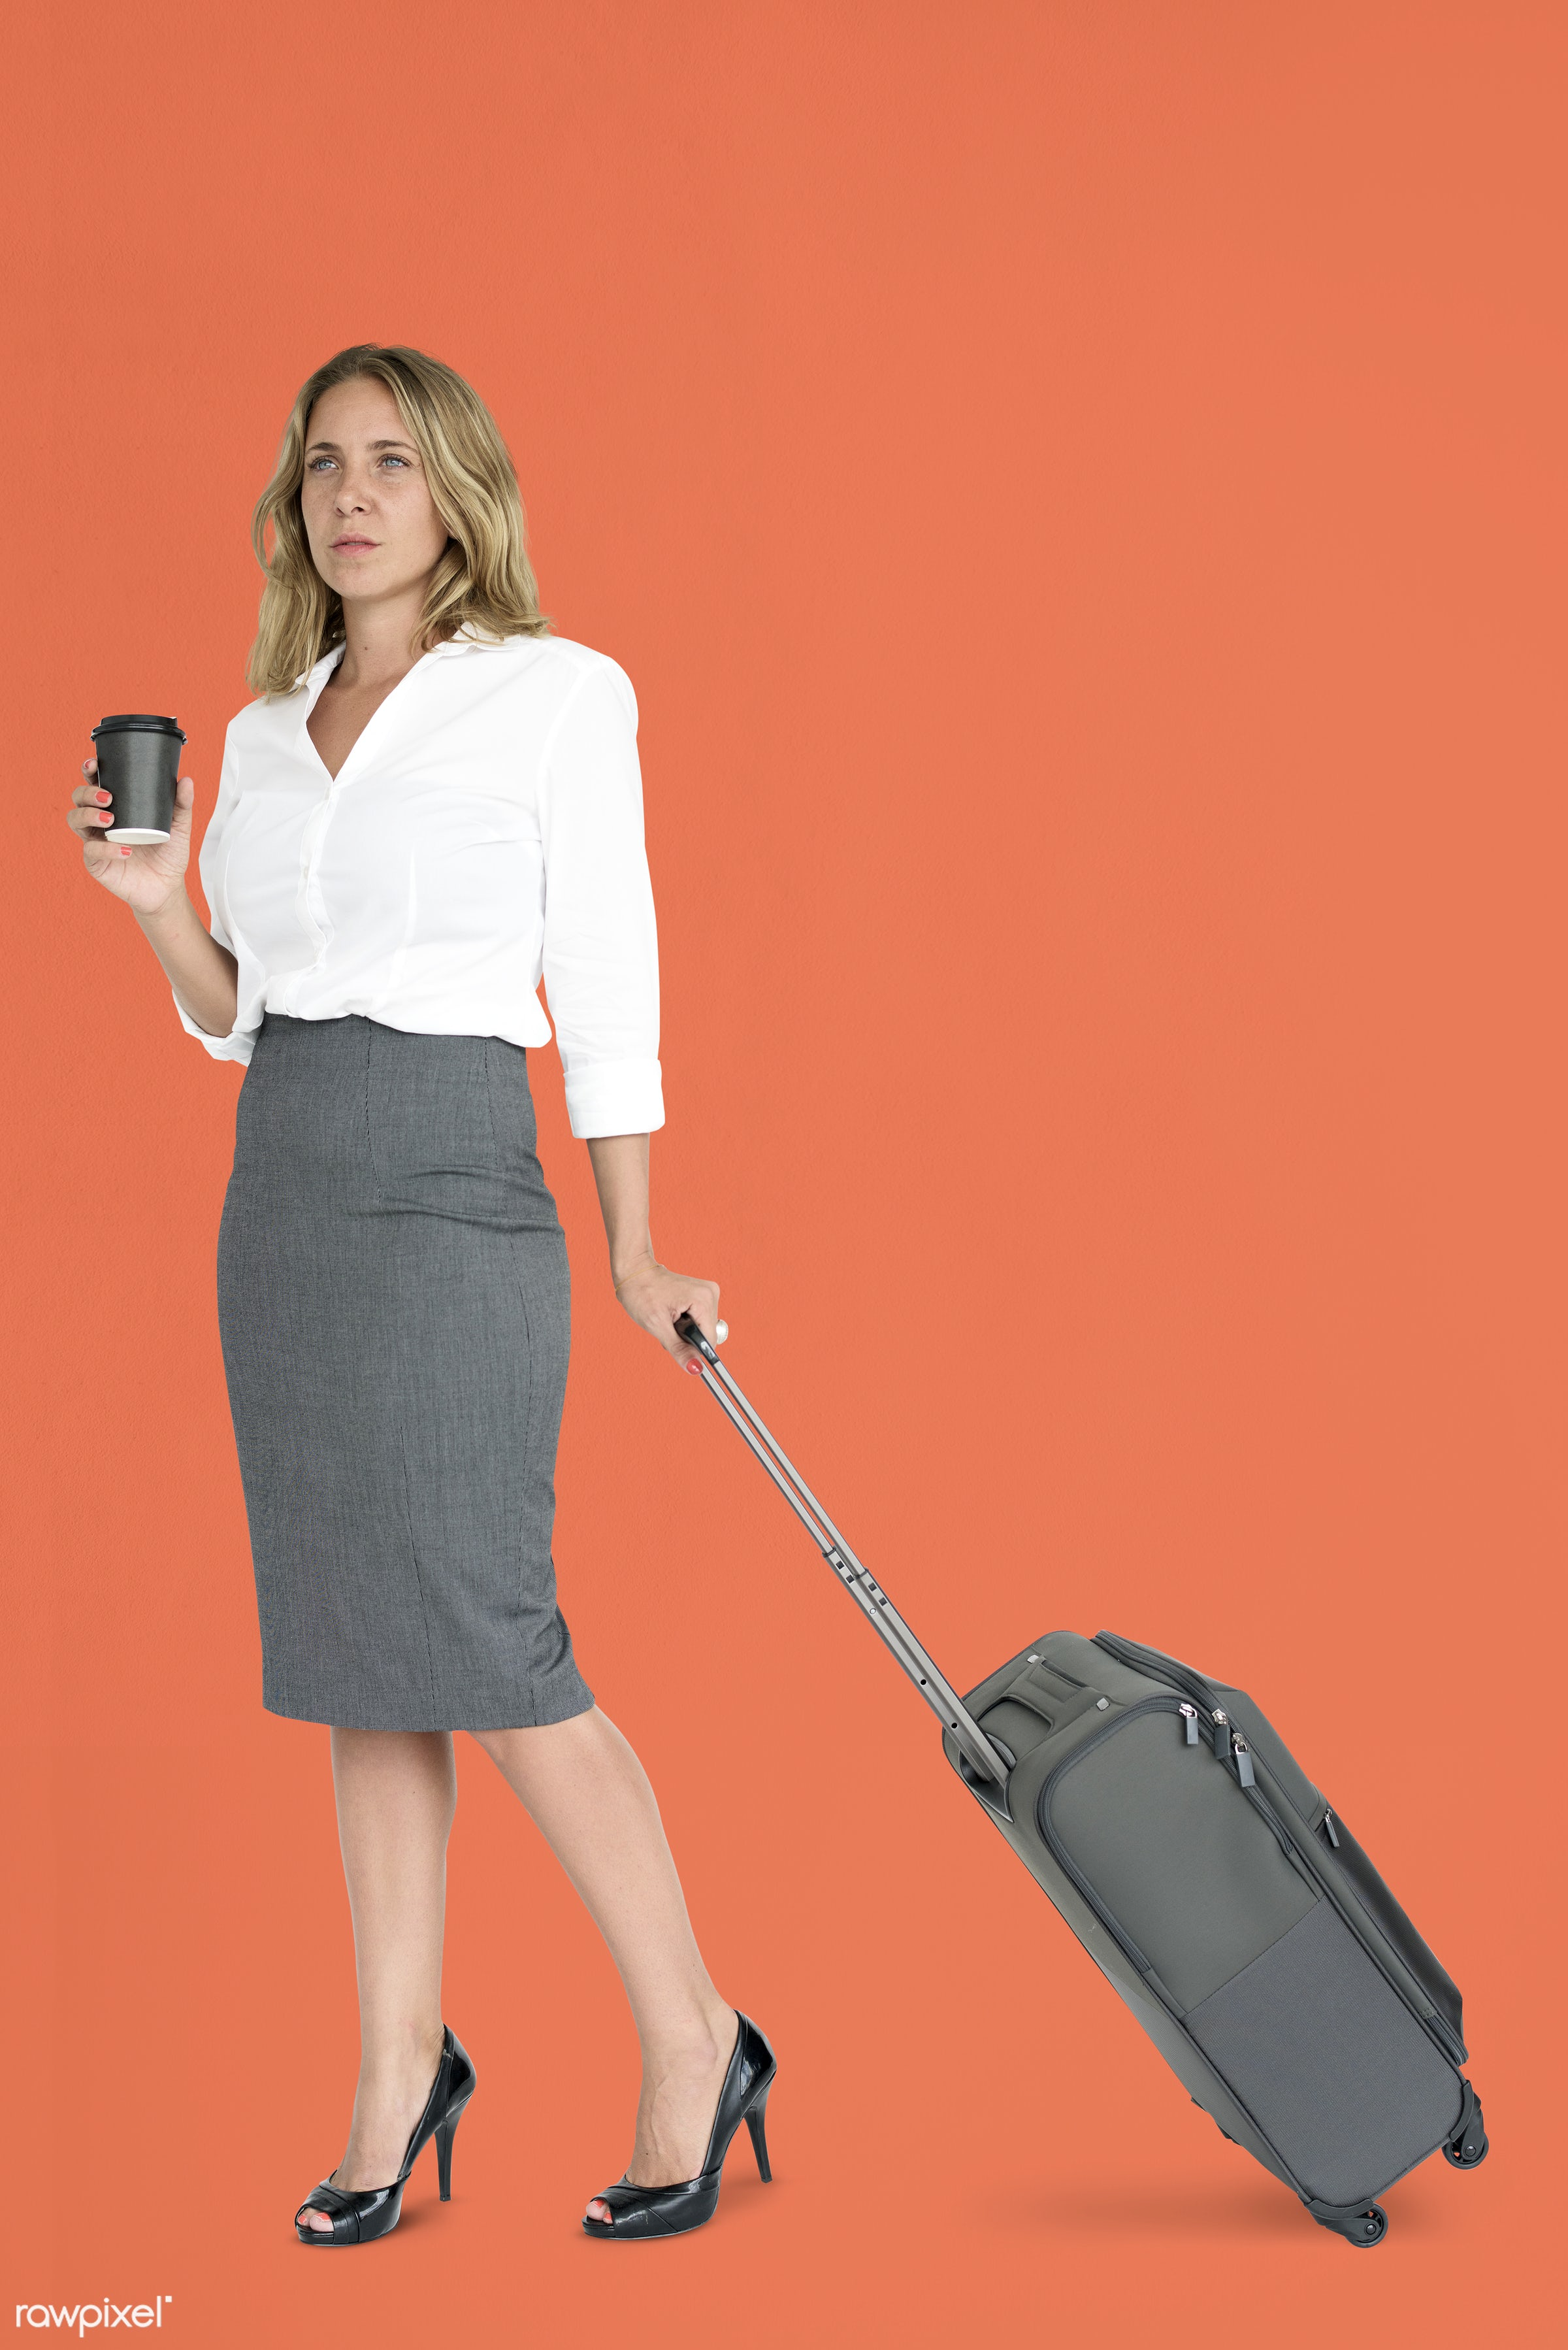 cup, studio, face, person, travel, people, drinks, business, trip, man, orange, isolated, suitcase, coffee, male, traveler,...